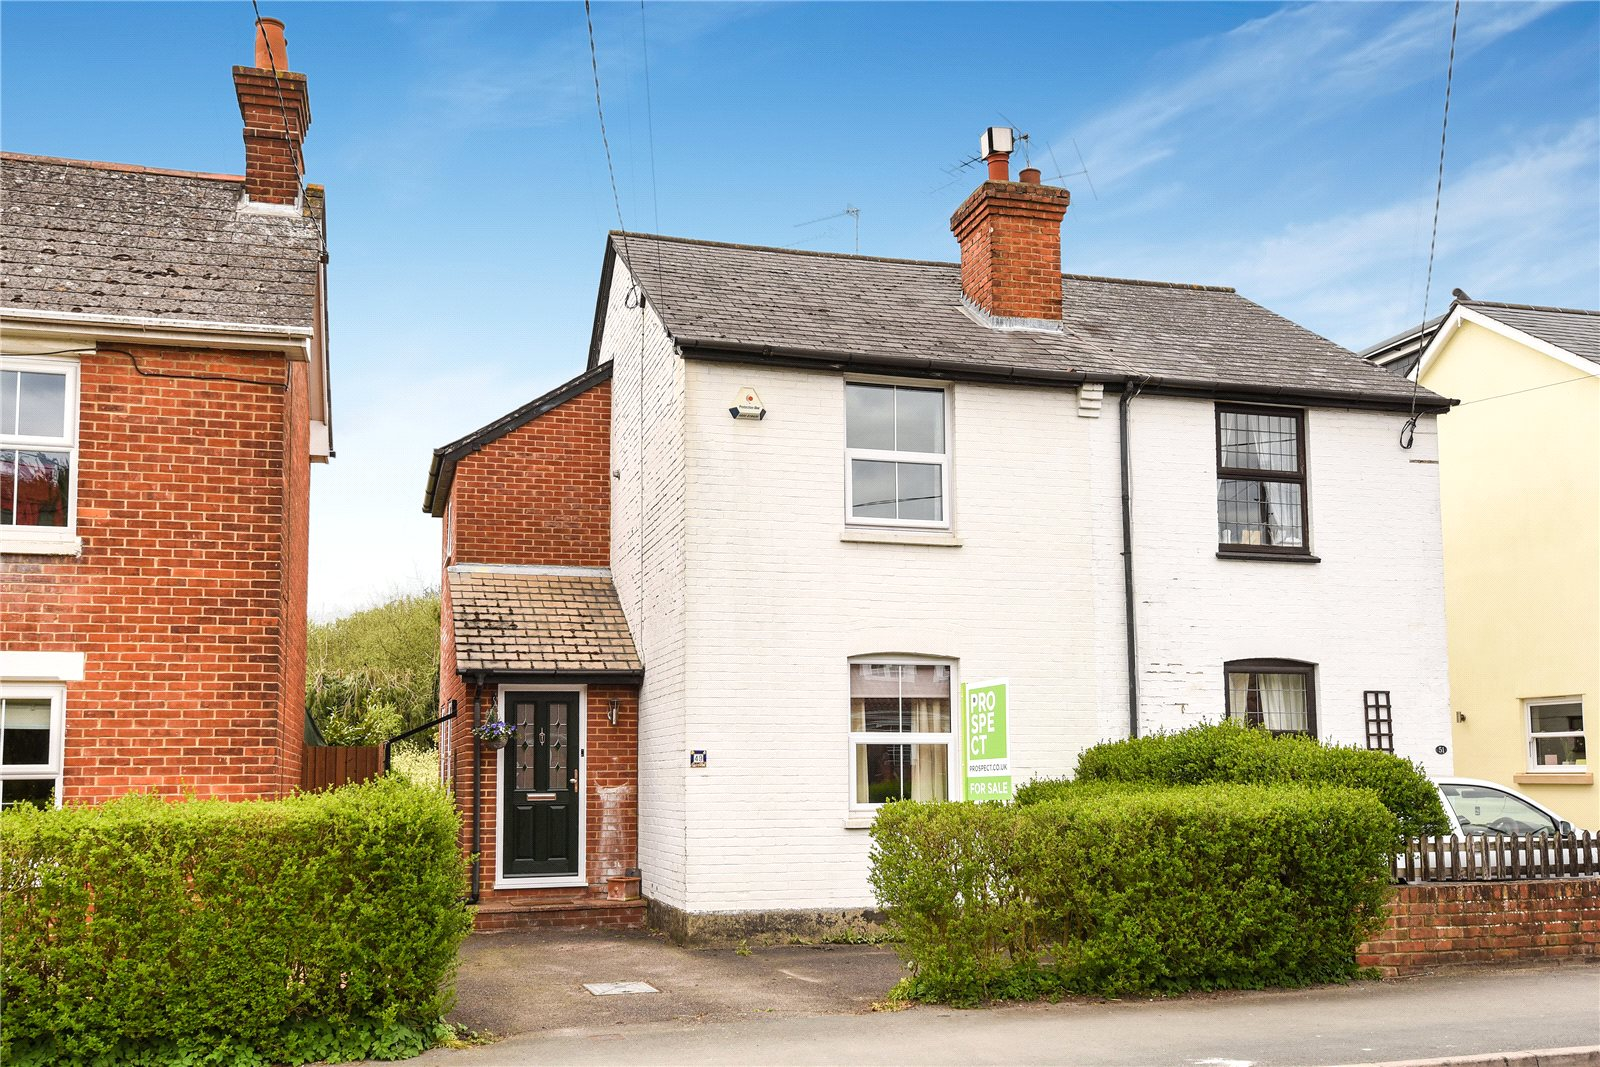 3 Bedrooms Semi Detached House for sale in Branksome Hill Road, College Town, Sandhurst, Berkshire, GU47